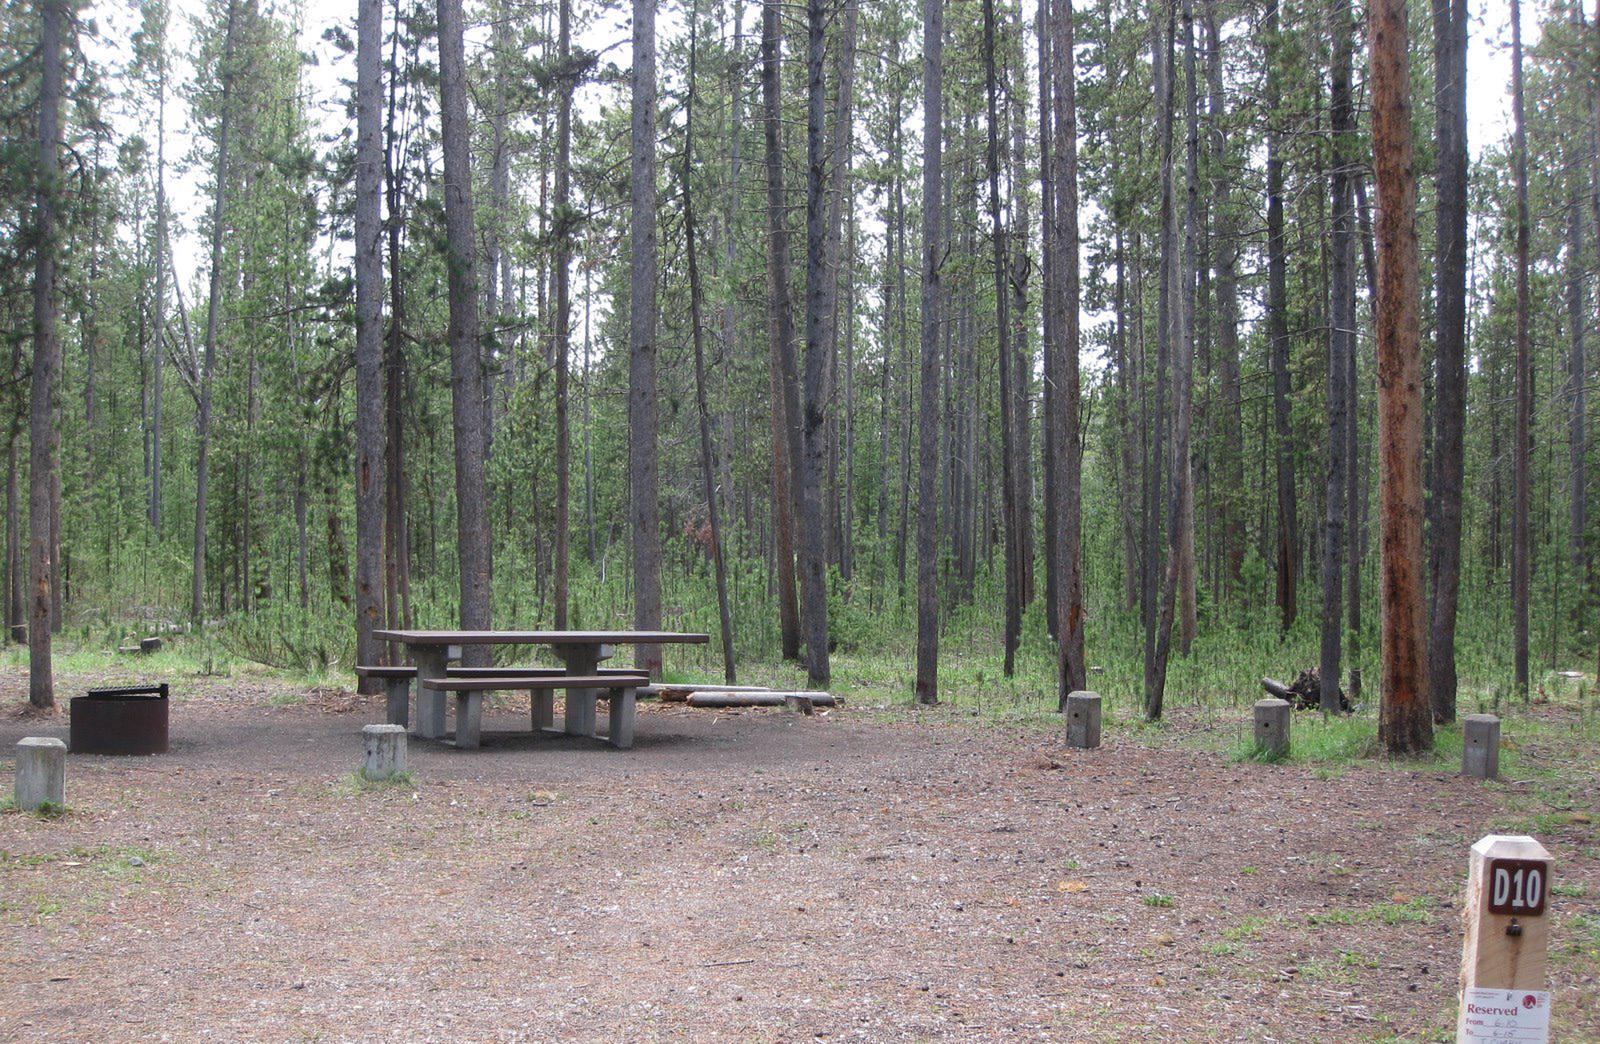 Site D10, surrounded by pine trees, picnic table & fire ringSite D10